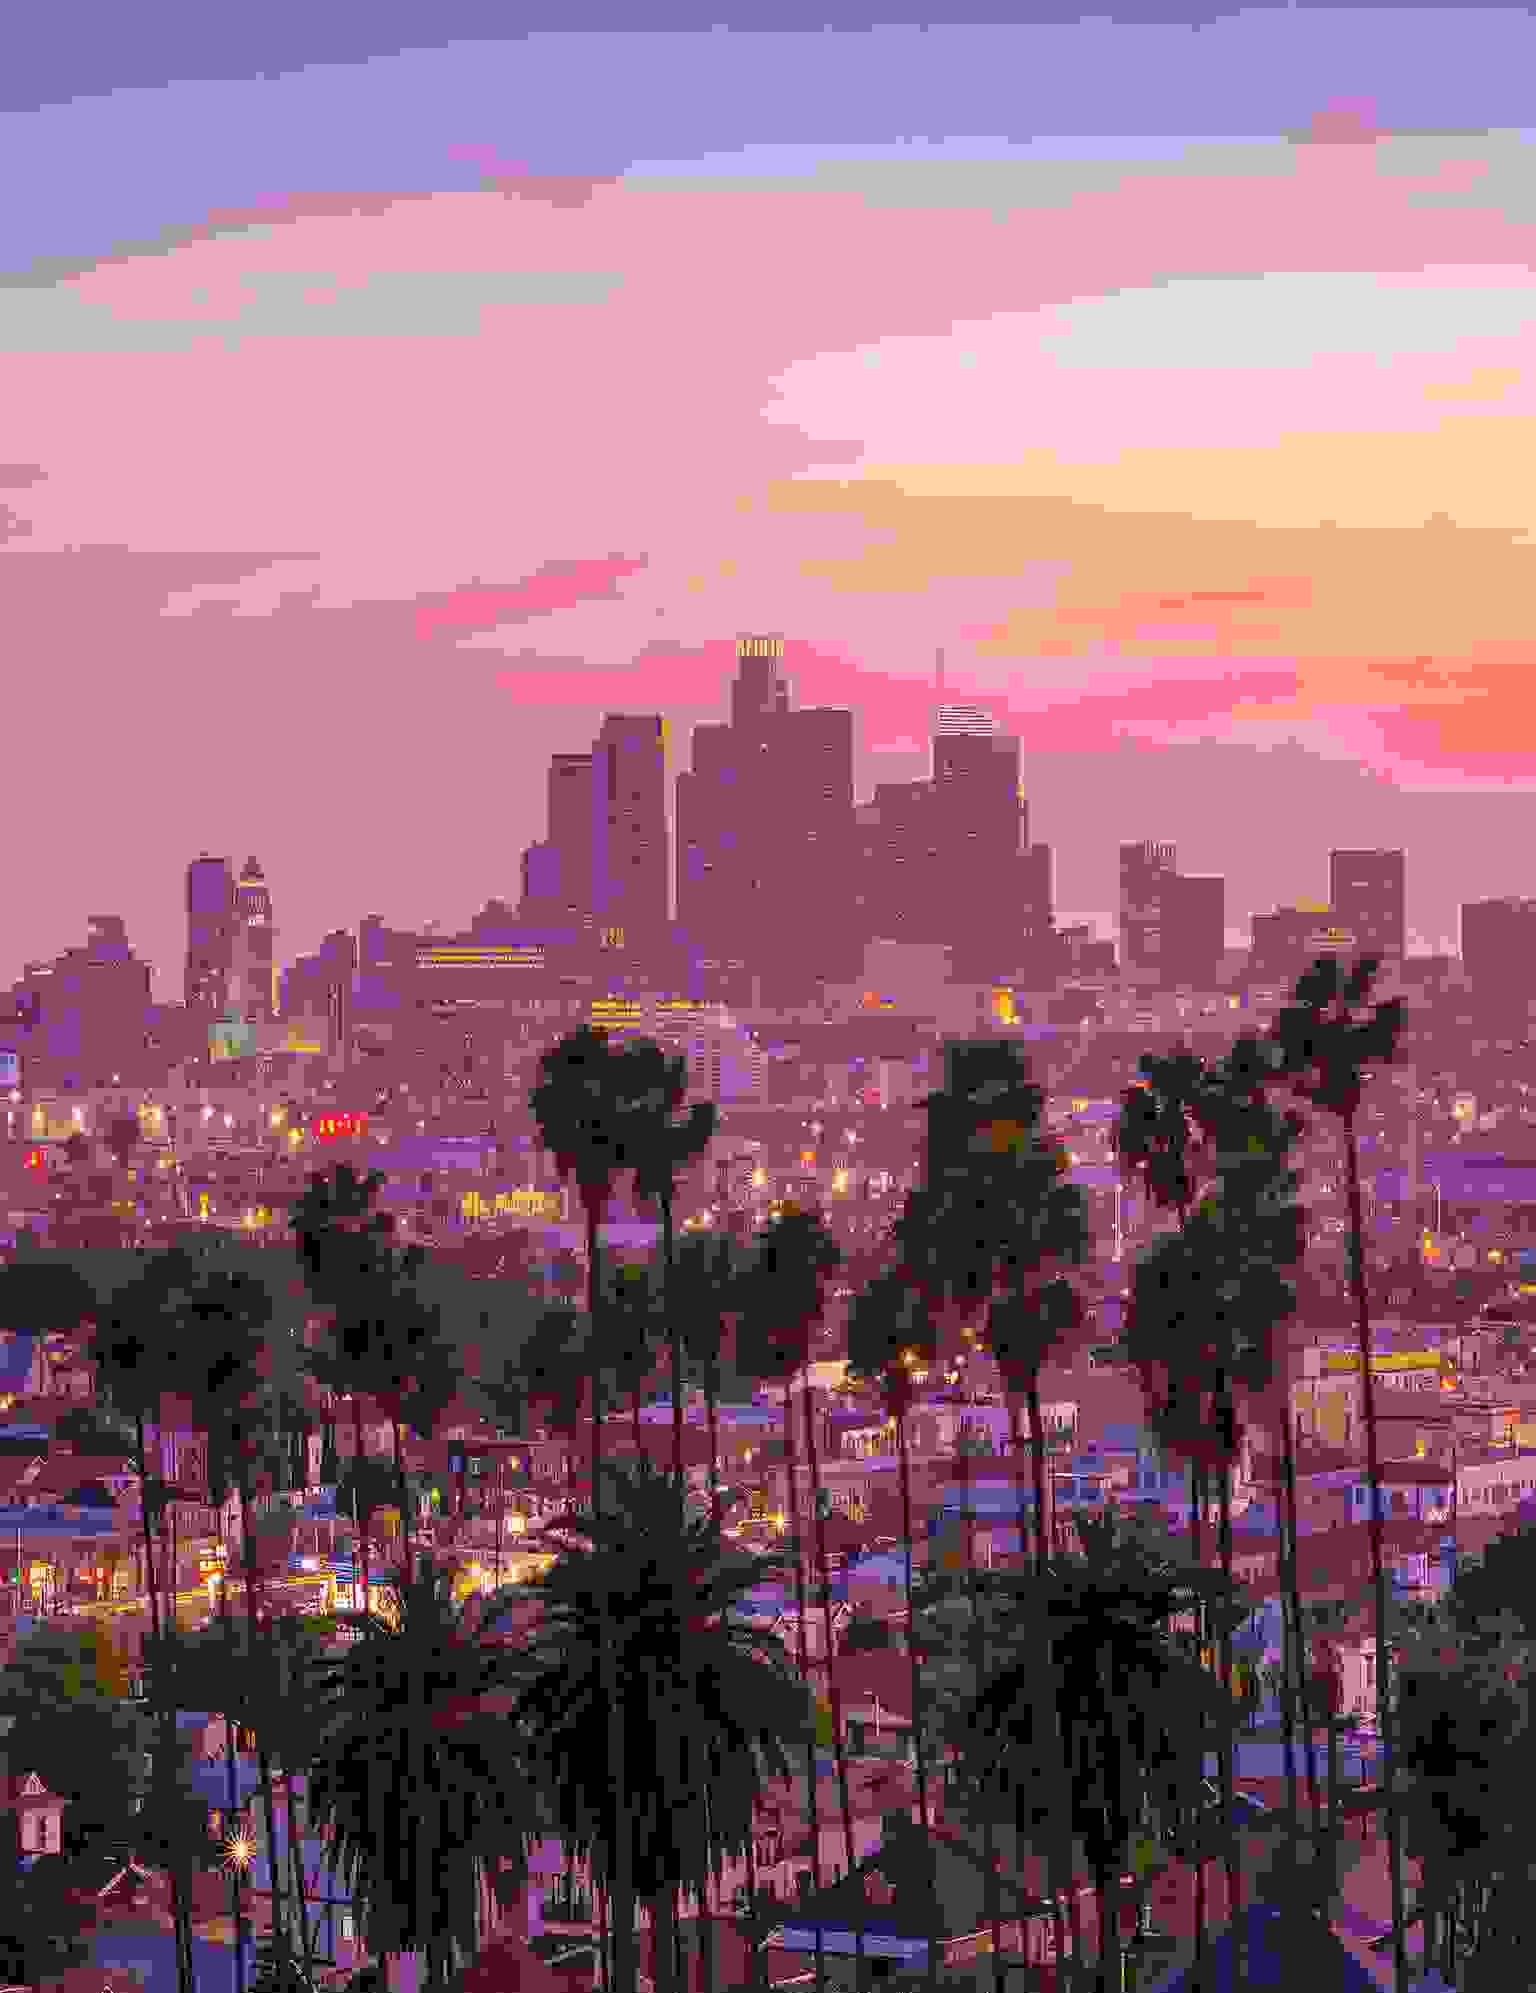 Sunset at Los Angeles, United States